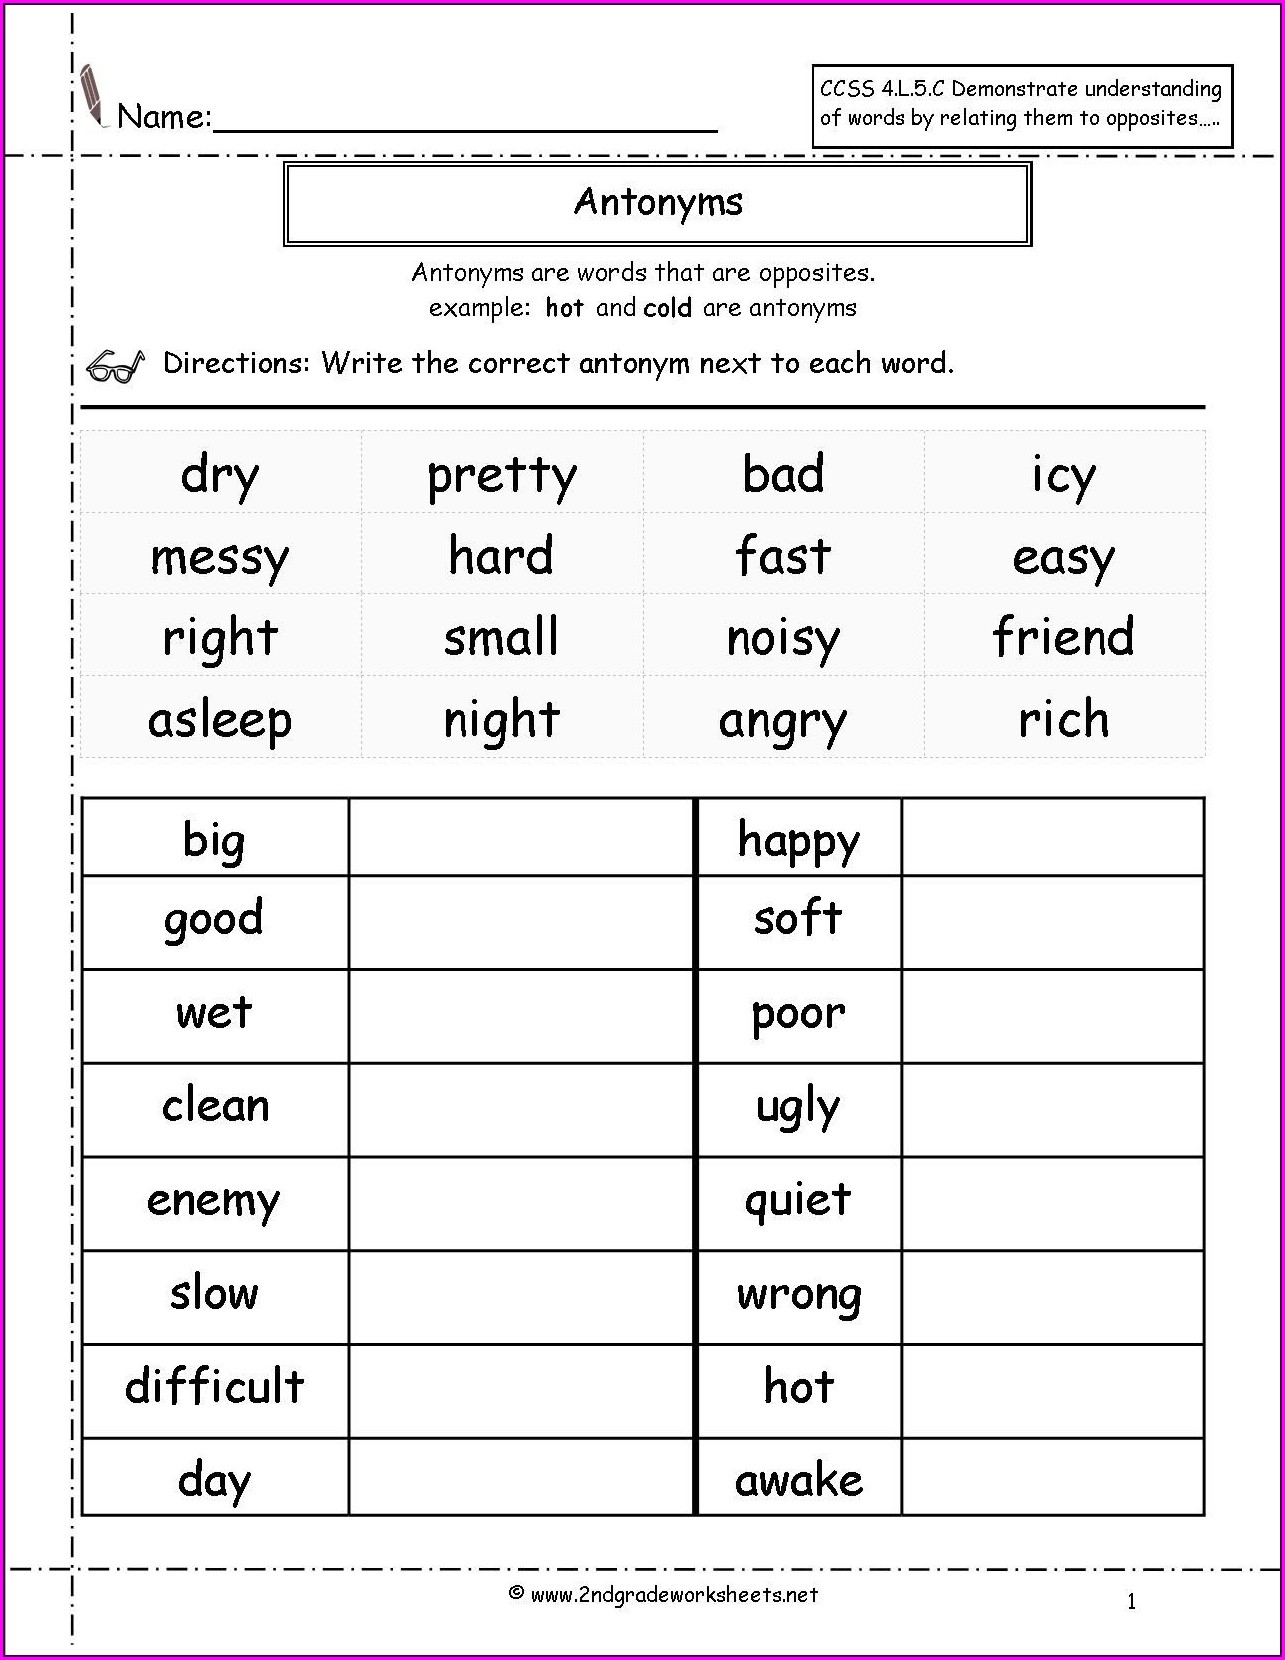 2nd Grade Synonyms Worksheet For Class 2